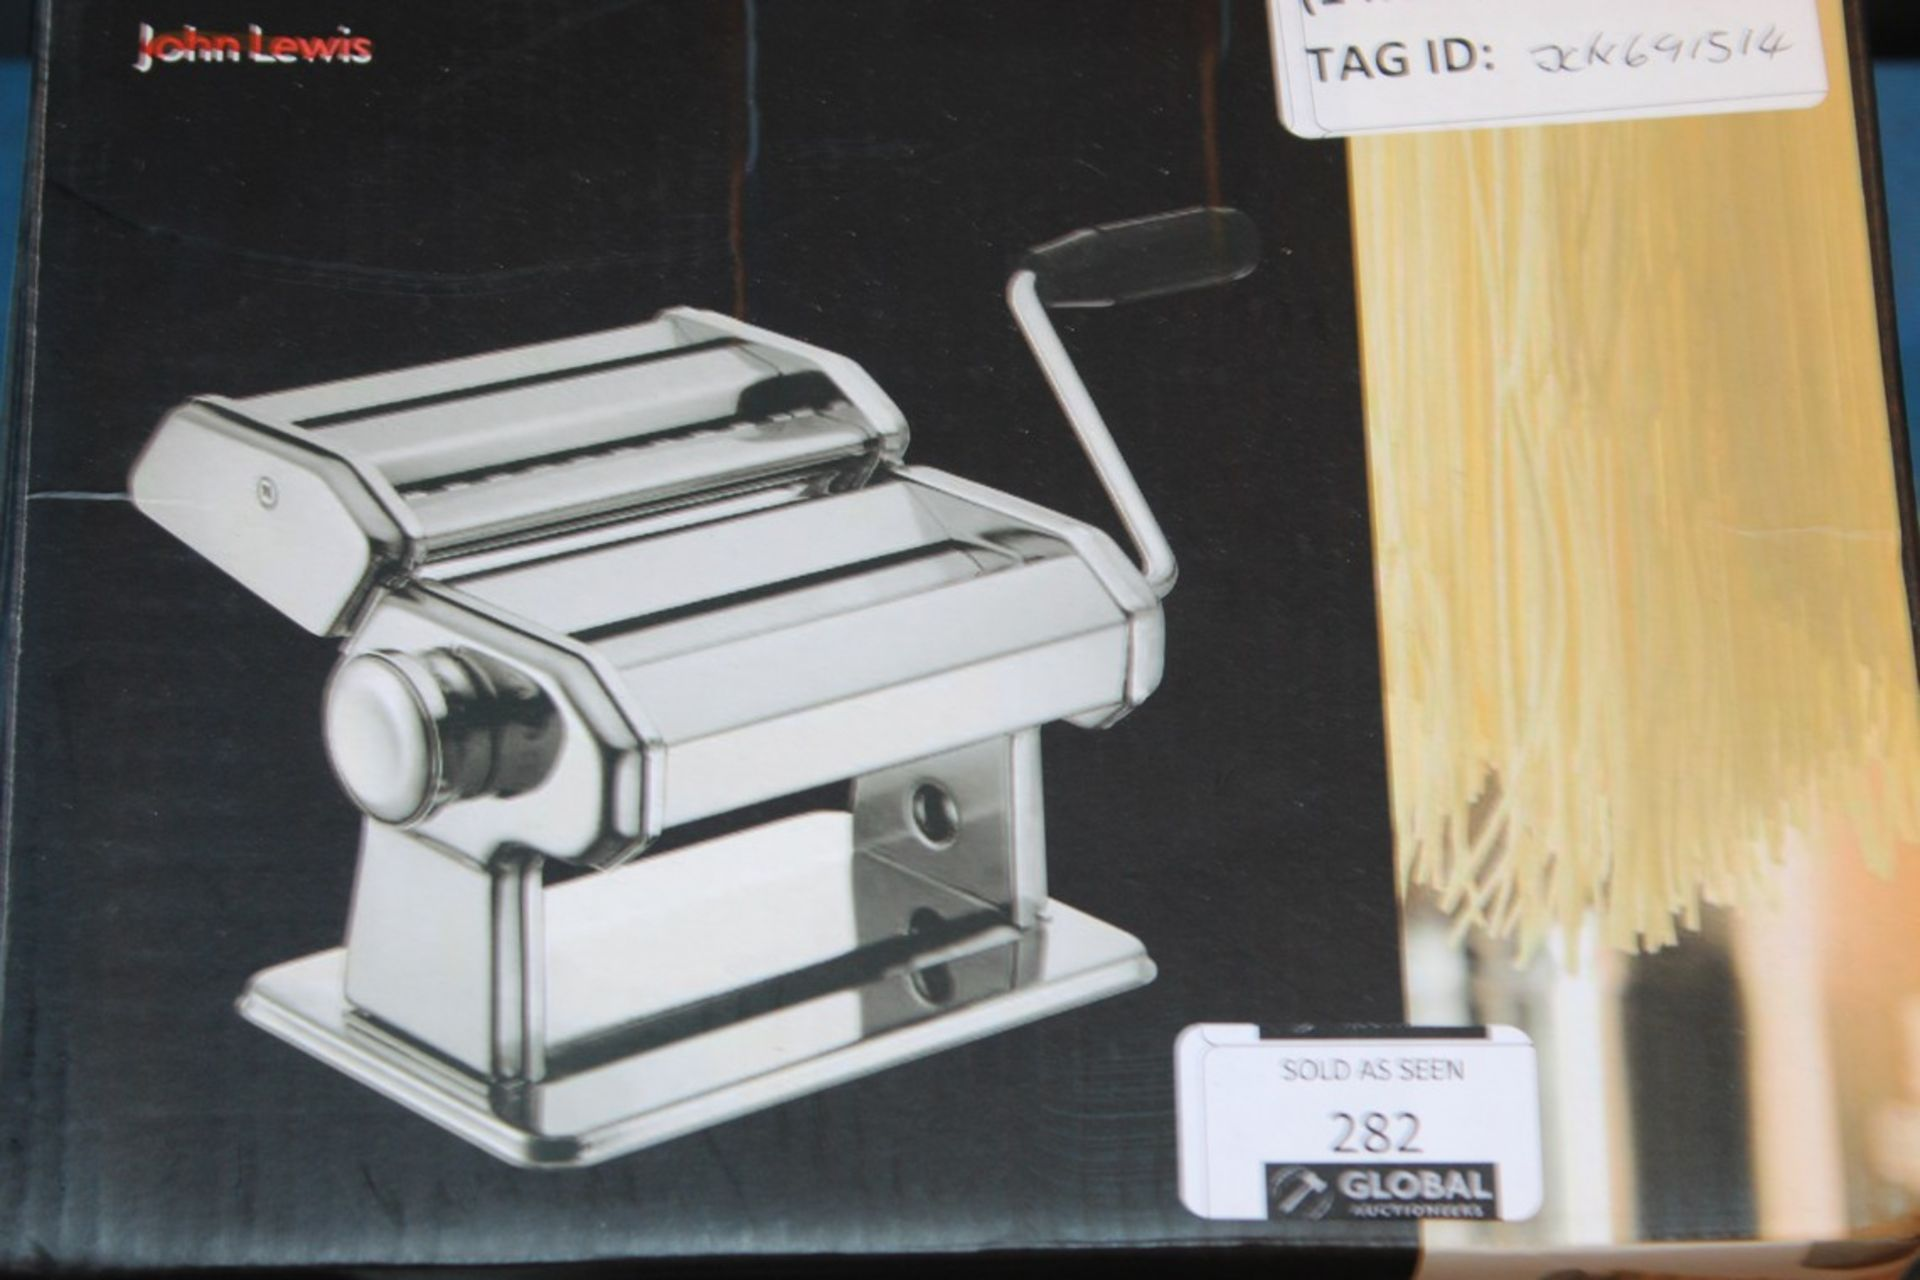 Lot 282 - Boxed John Lewis & Partners Adjustable Pasta Machine With 9 Thickness Settings RRP £50 (691514) (